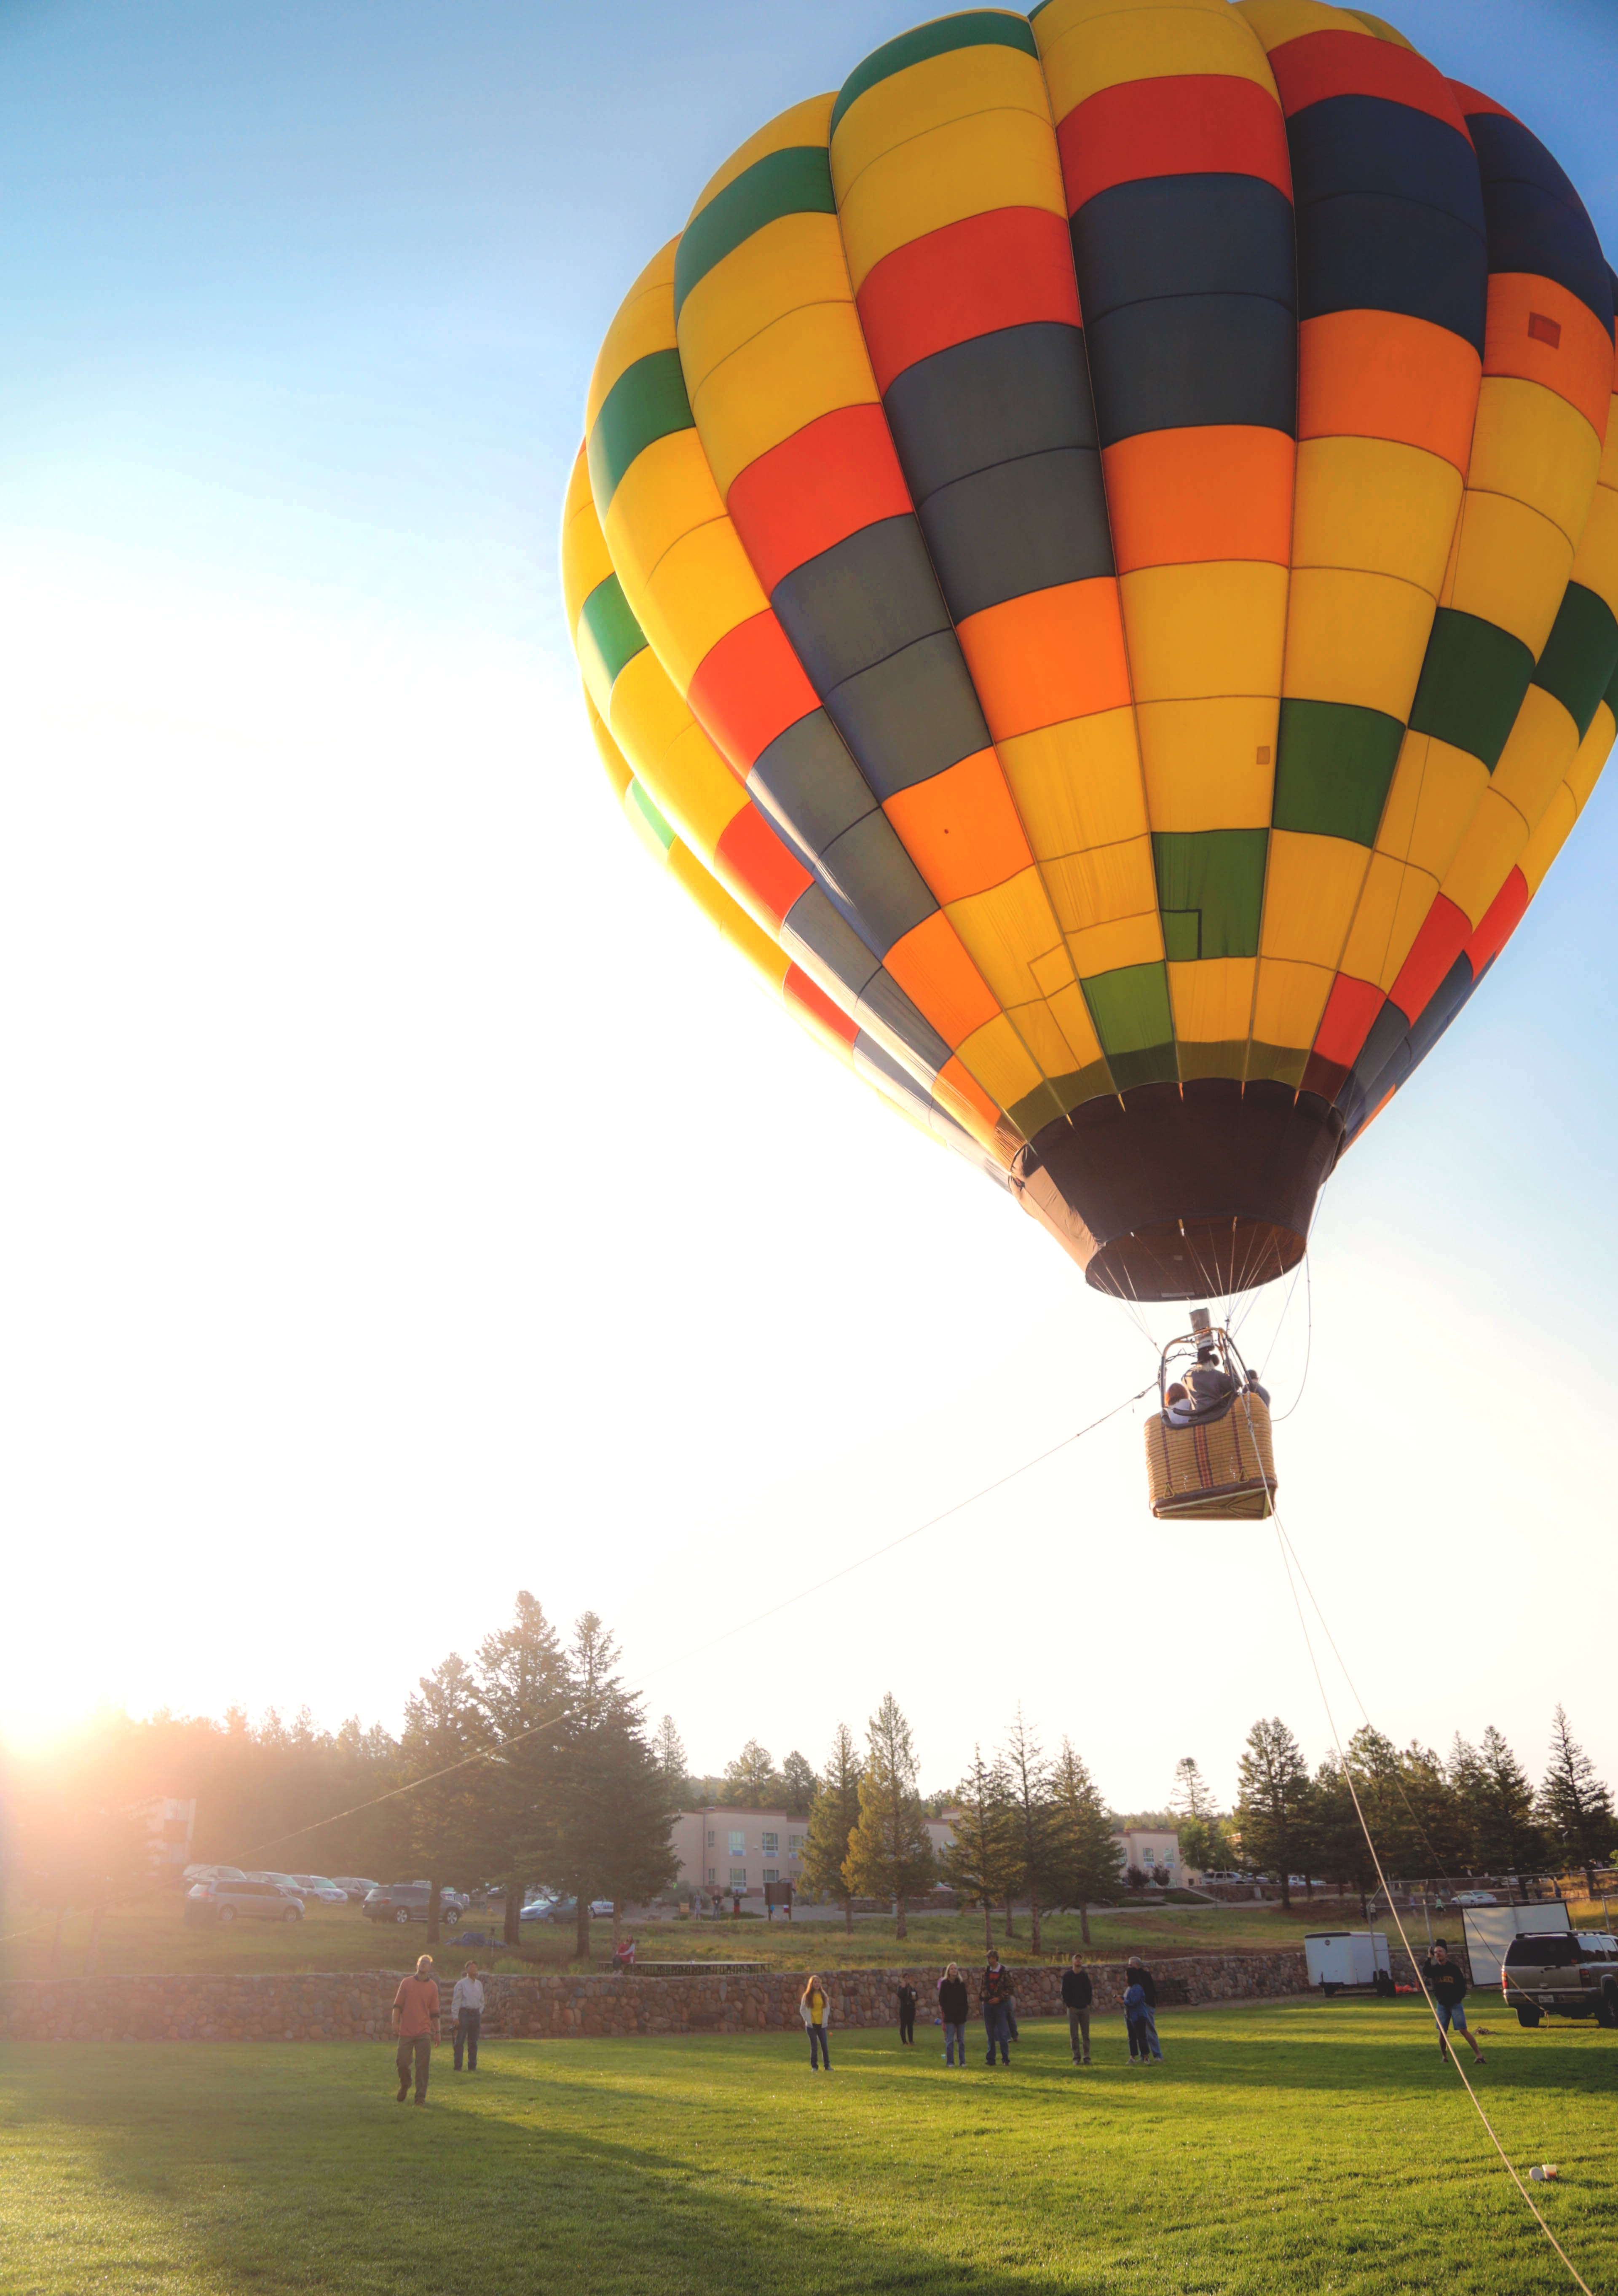 person riding hot air balloon